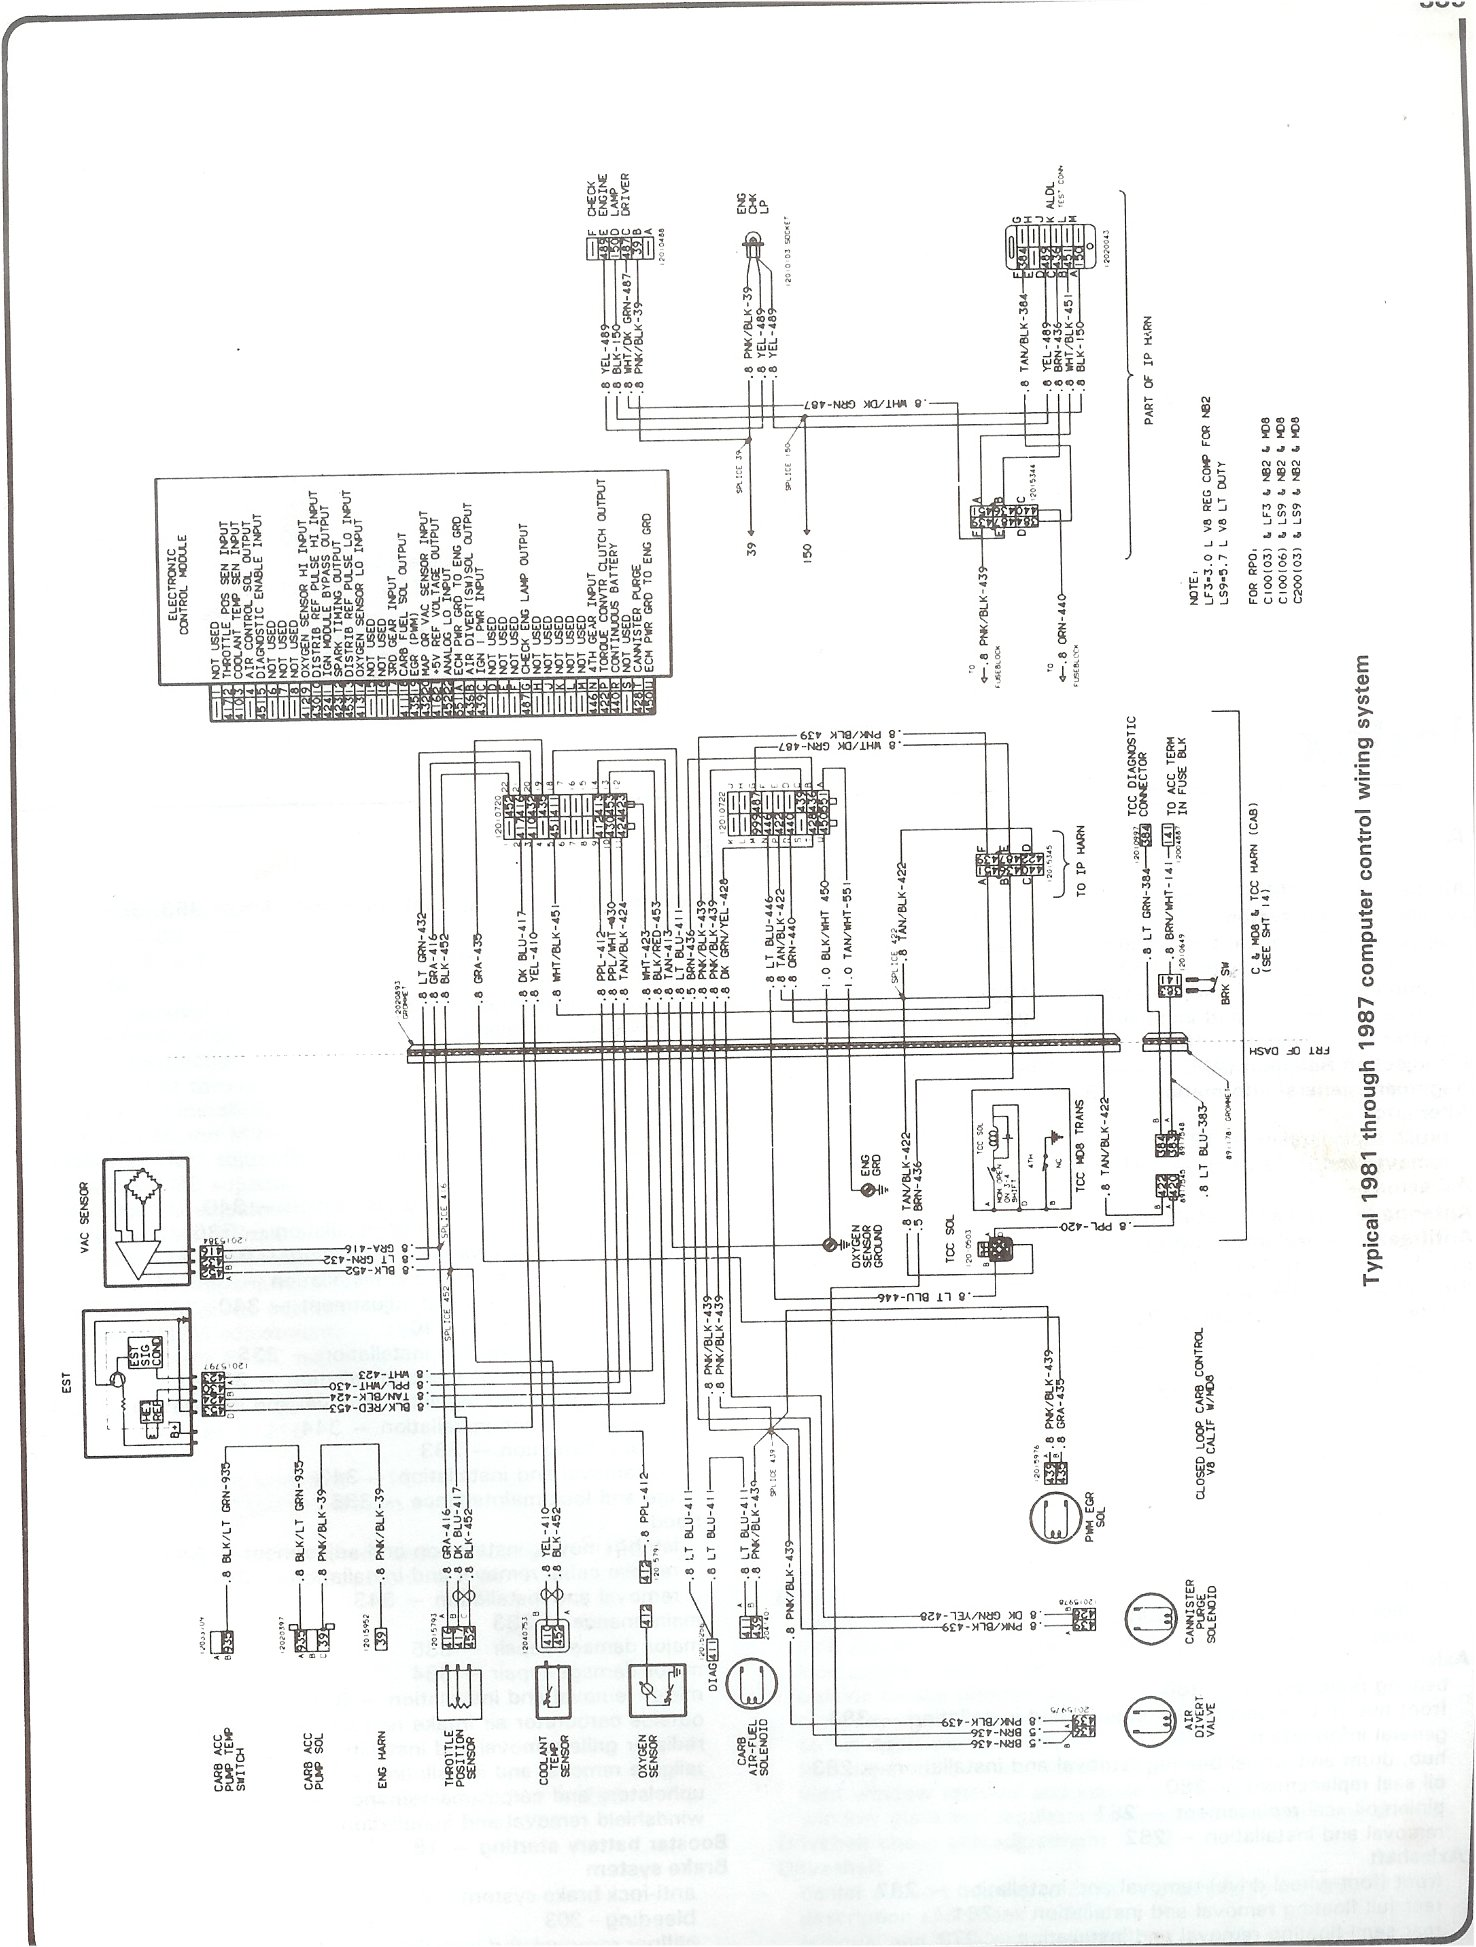 81 87_computer_control_wiring complete 73 87 wiring diagrams chevy distributor wiring diagram at gsmx.co